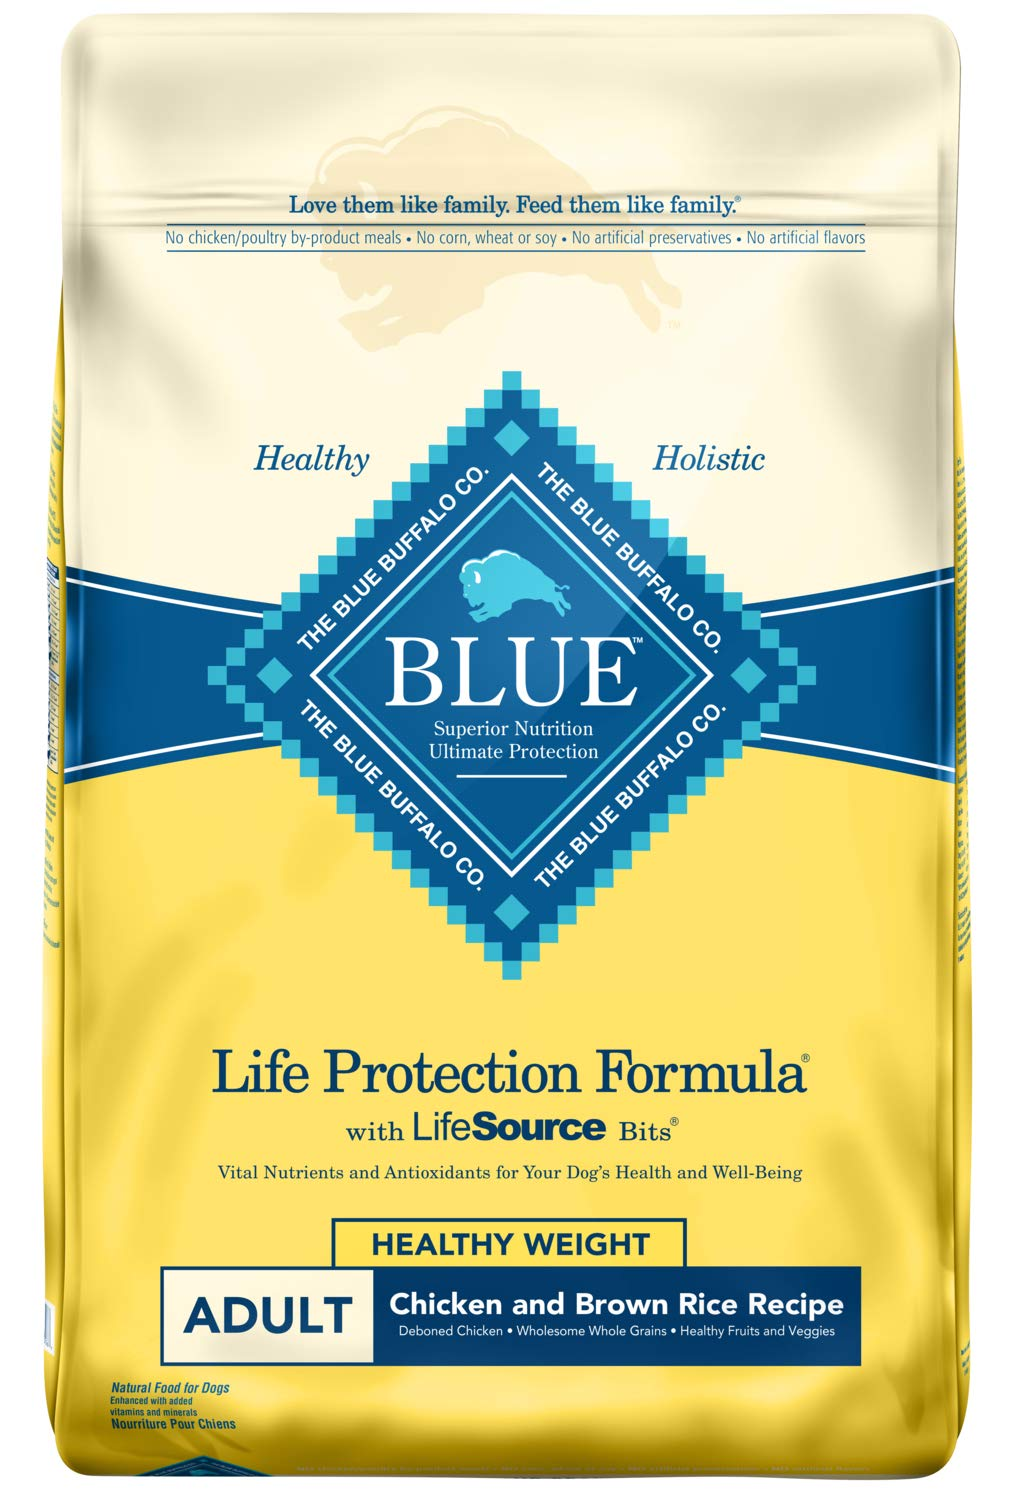 1. Blue Buffalo Life Protection Formula Healthy Weight Adult Dry Dog Food